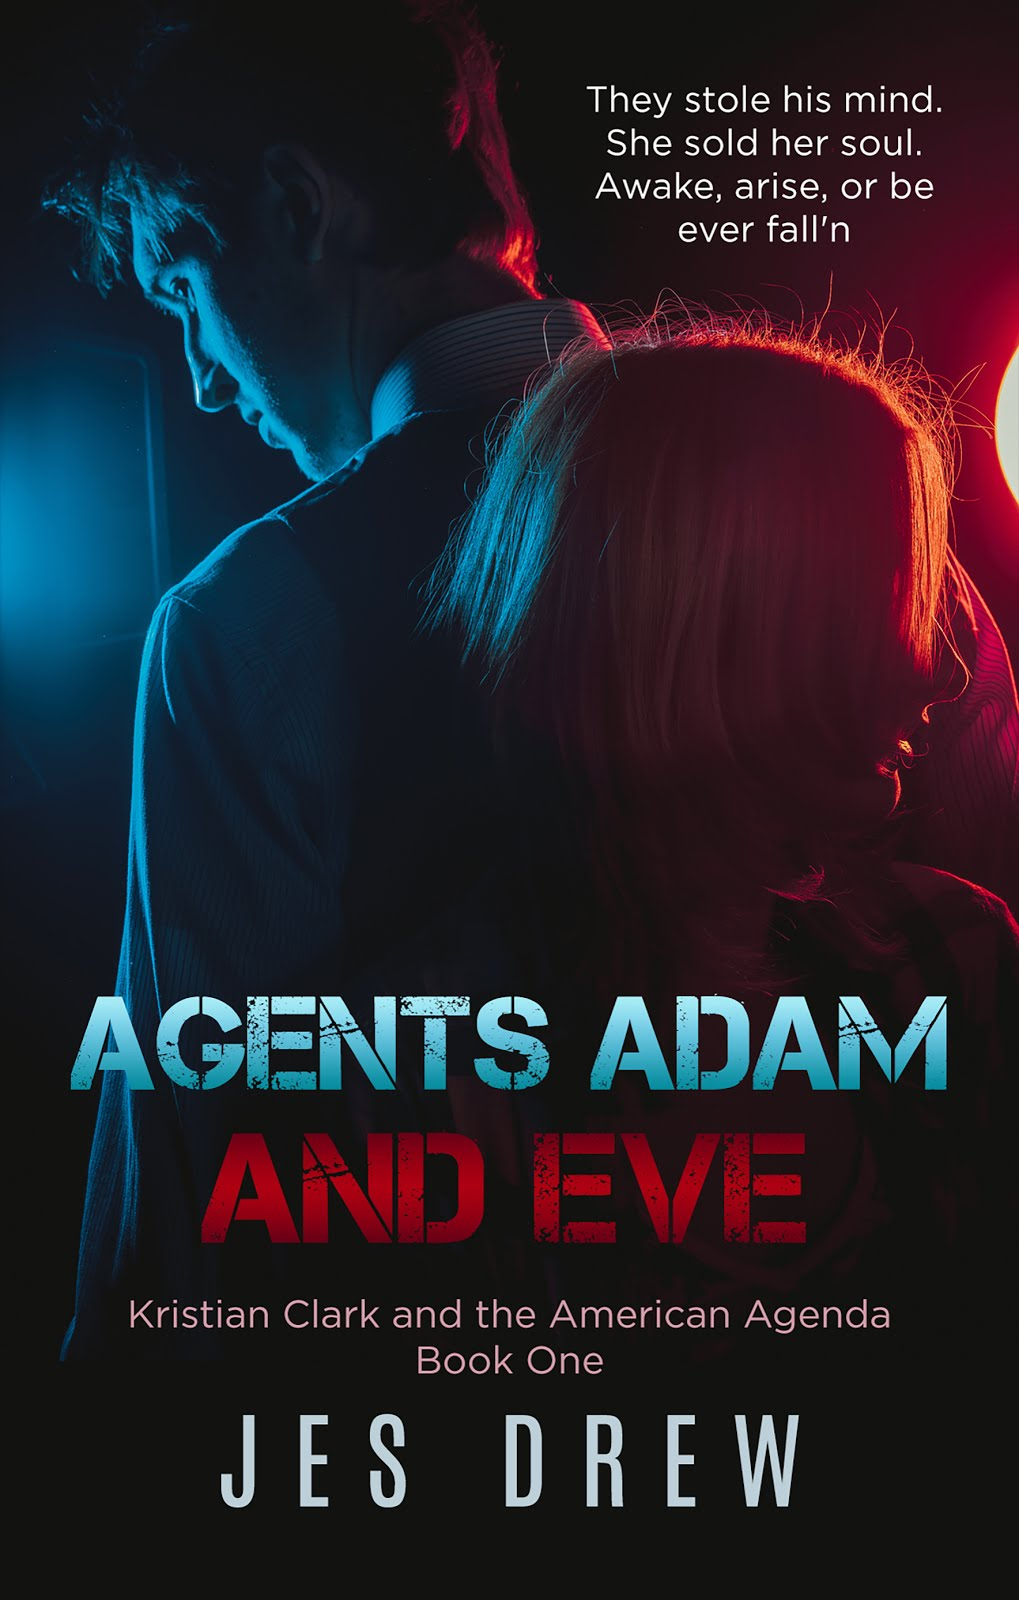 Agents Adam and Eve: Buy Now!